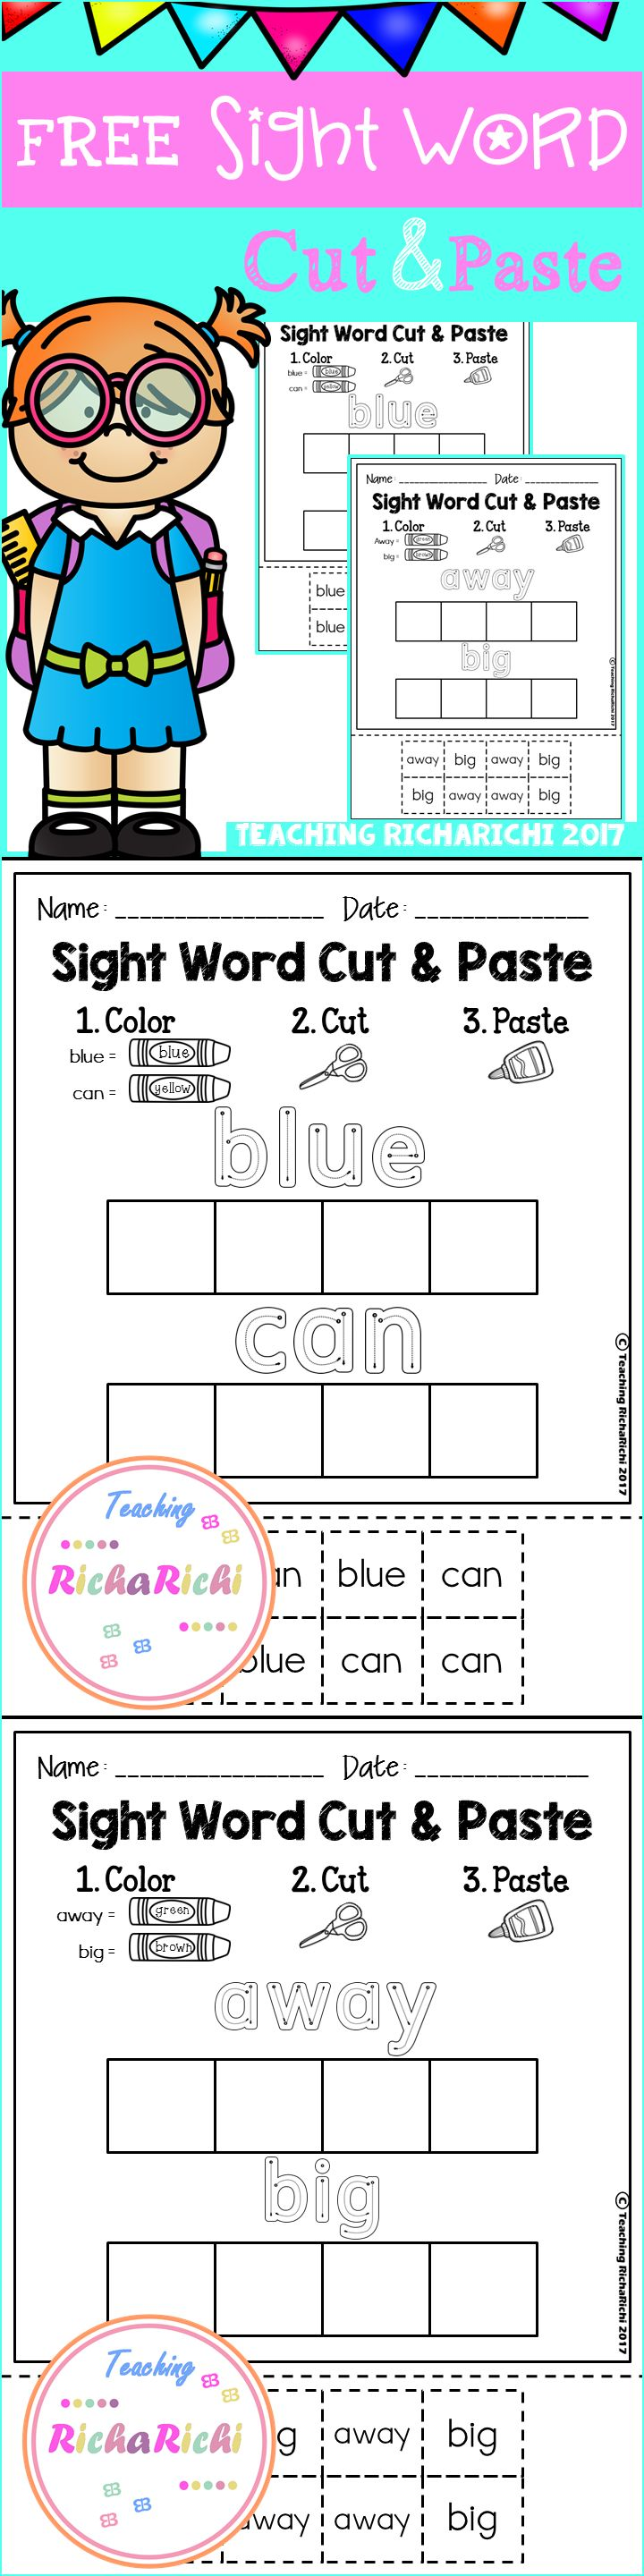 worksheet Free Printable Kindergarten Sight Word Worksheets 10 best ideas about sight word worksheets on pinterest cut and paste pre primer inside you will find 3 pages of each page contains two s